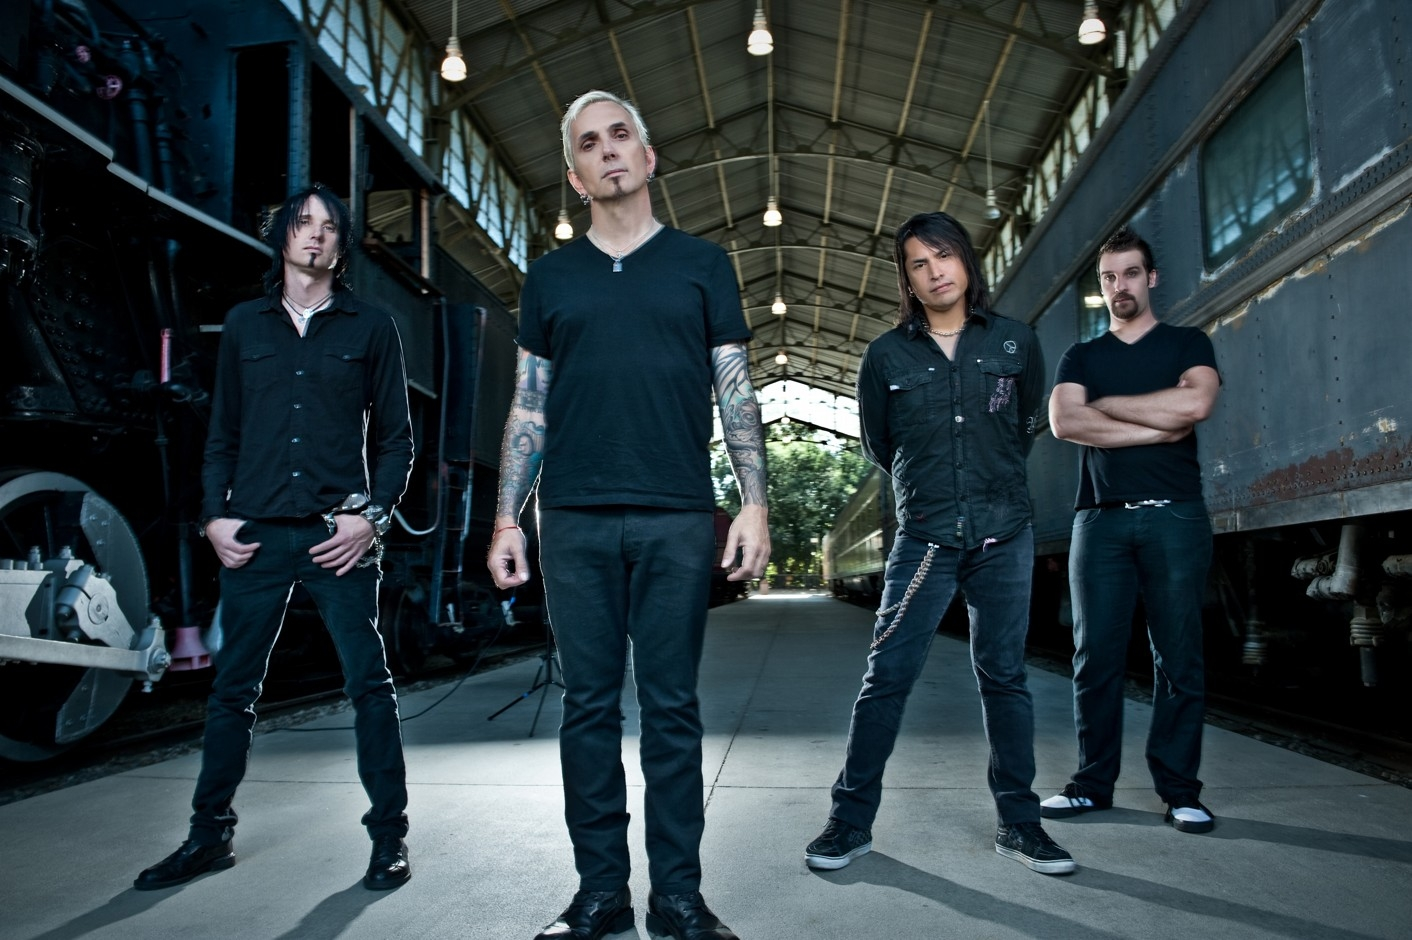 Win a chance to open for Everclear on their Australian tour!